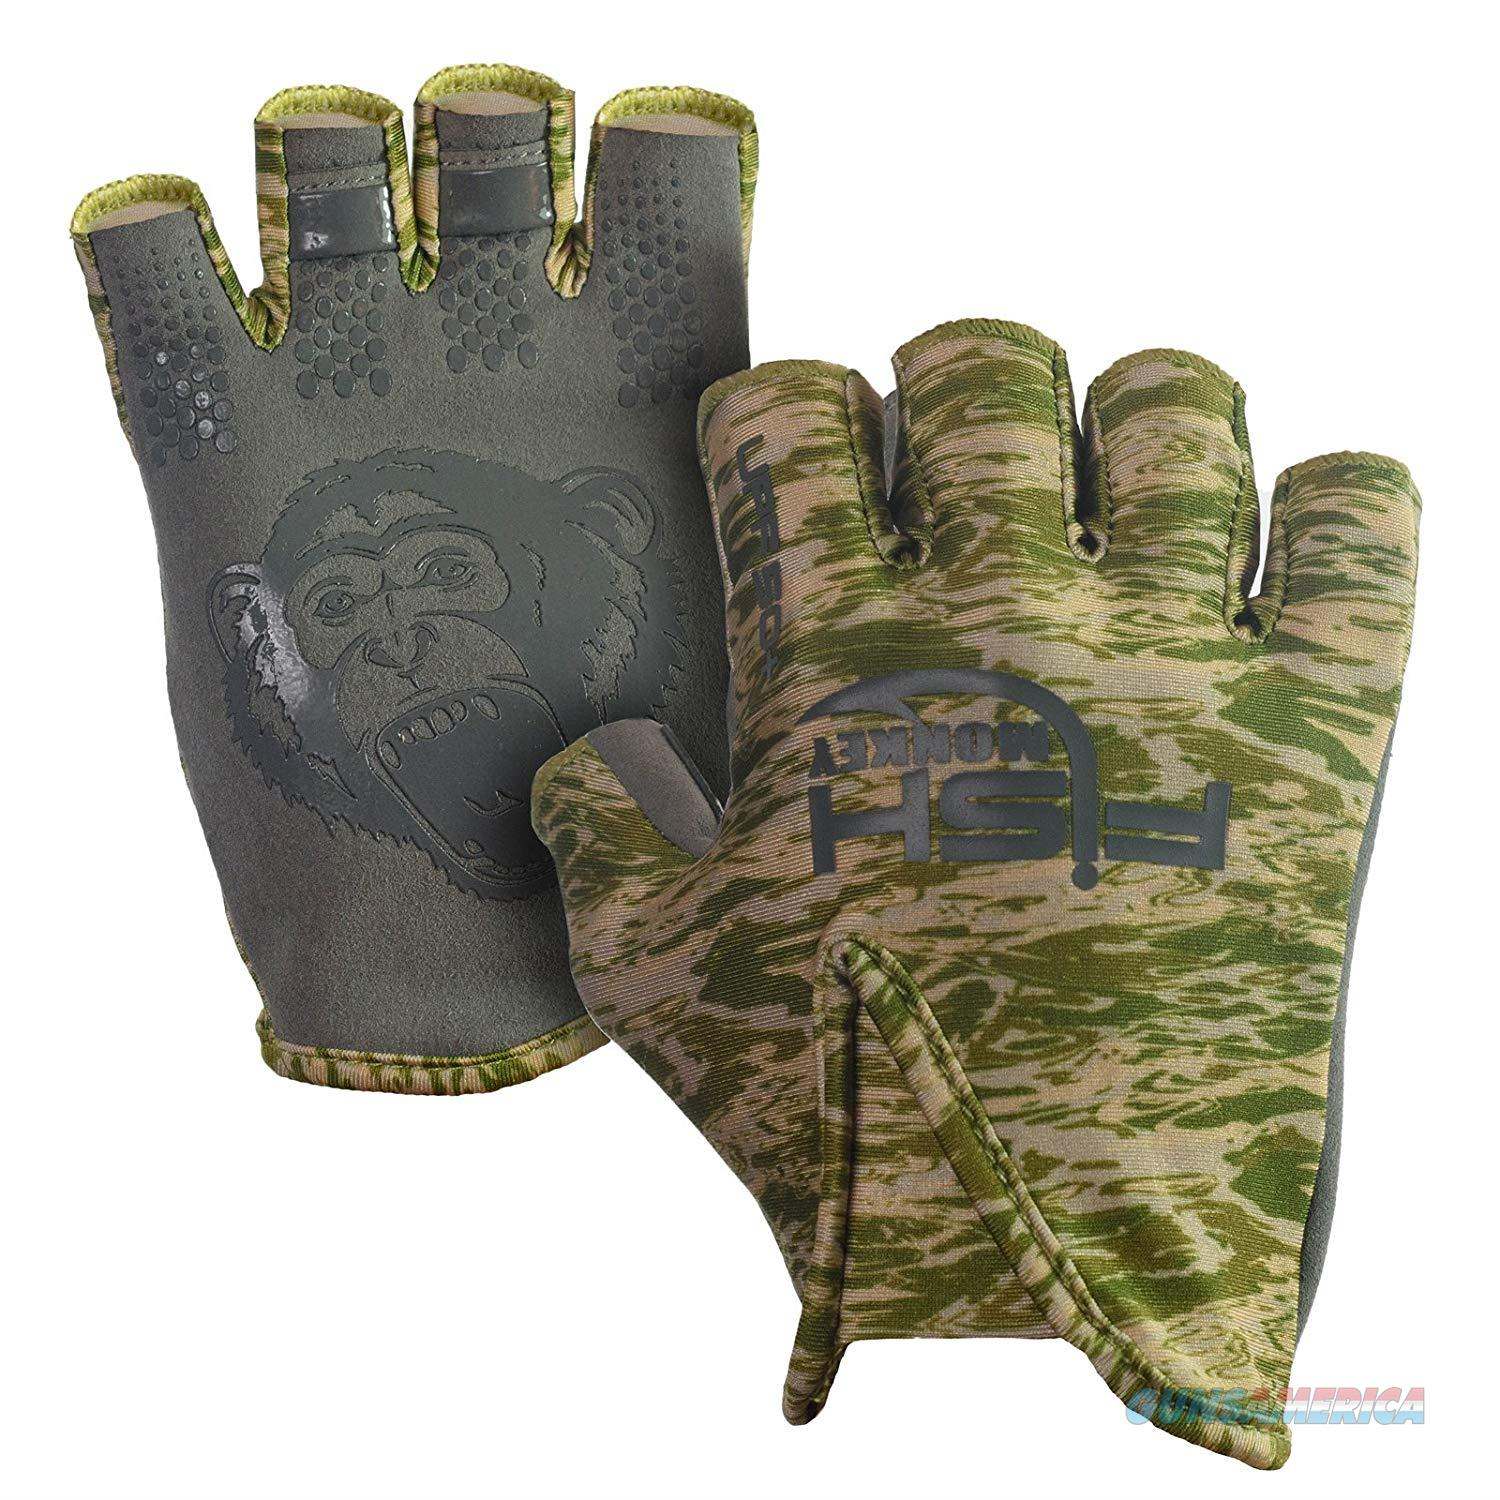 Fish Monkey Stubby Guide Glove Green MD  Non-Guns > Hunting Clothing and Equipment > Clothing > Gloves